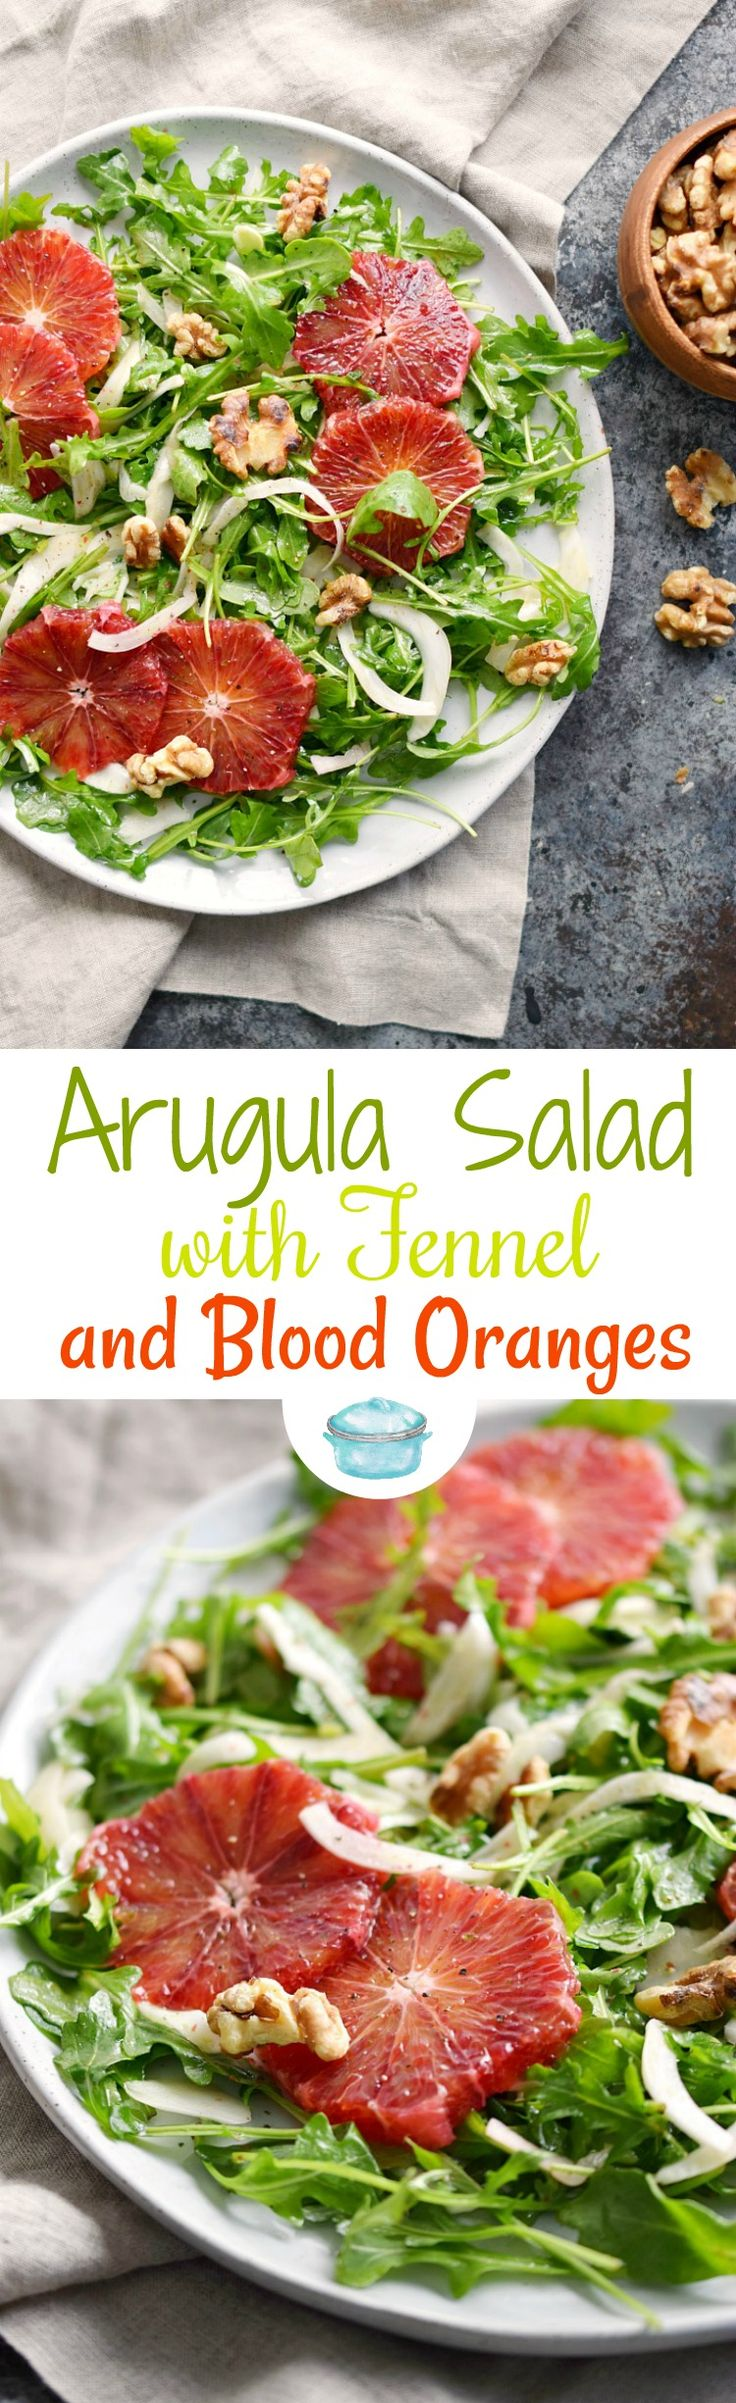 This light and refreshing Arugula Salad with Fennel and Blood Oranges is perfect as a starter before the main course or as a light meal! © COOKING WITH CURLS